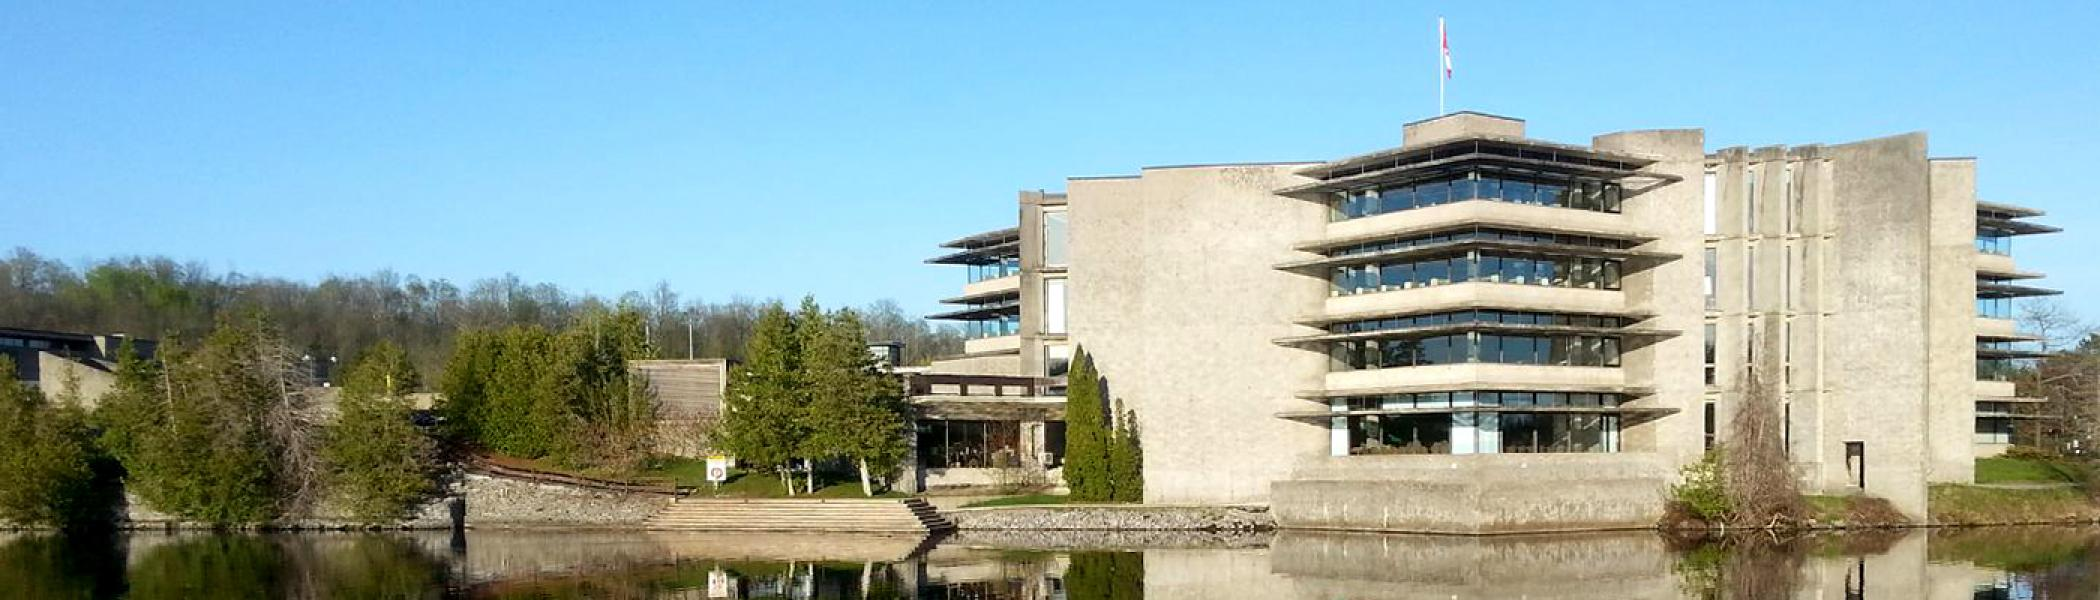 Bata library exterior in the spring, overlooking the Otonabee